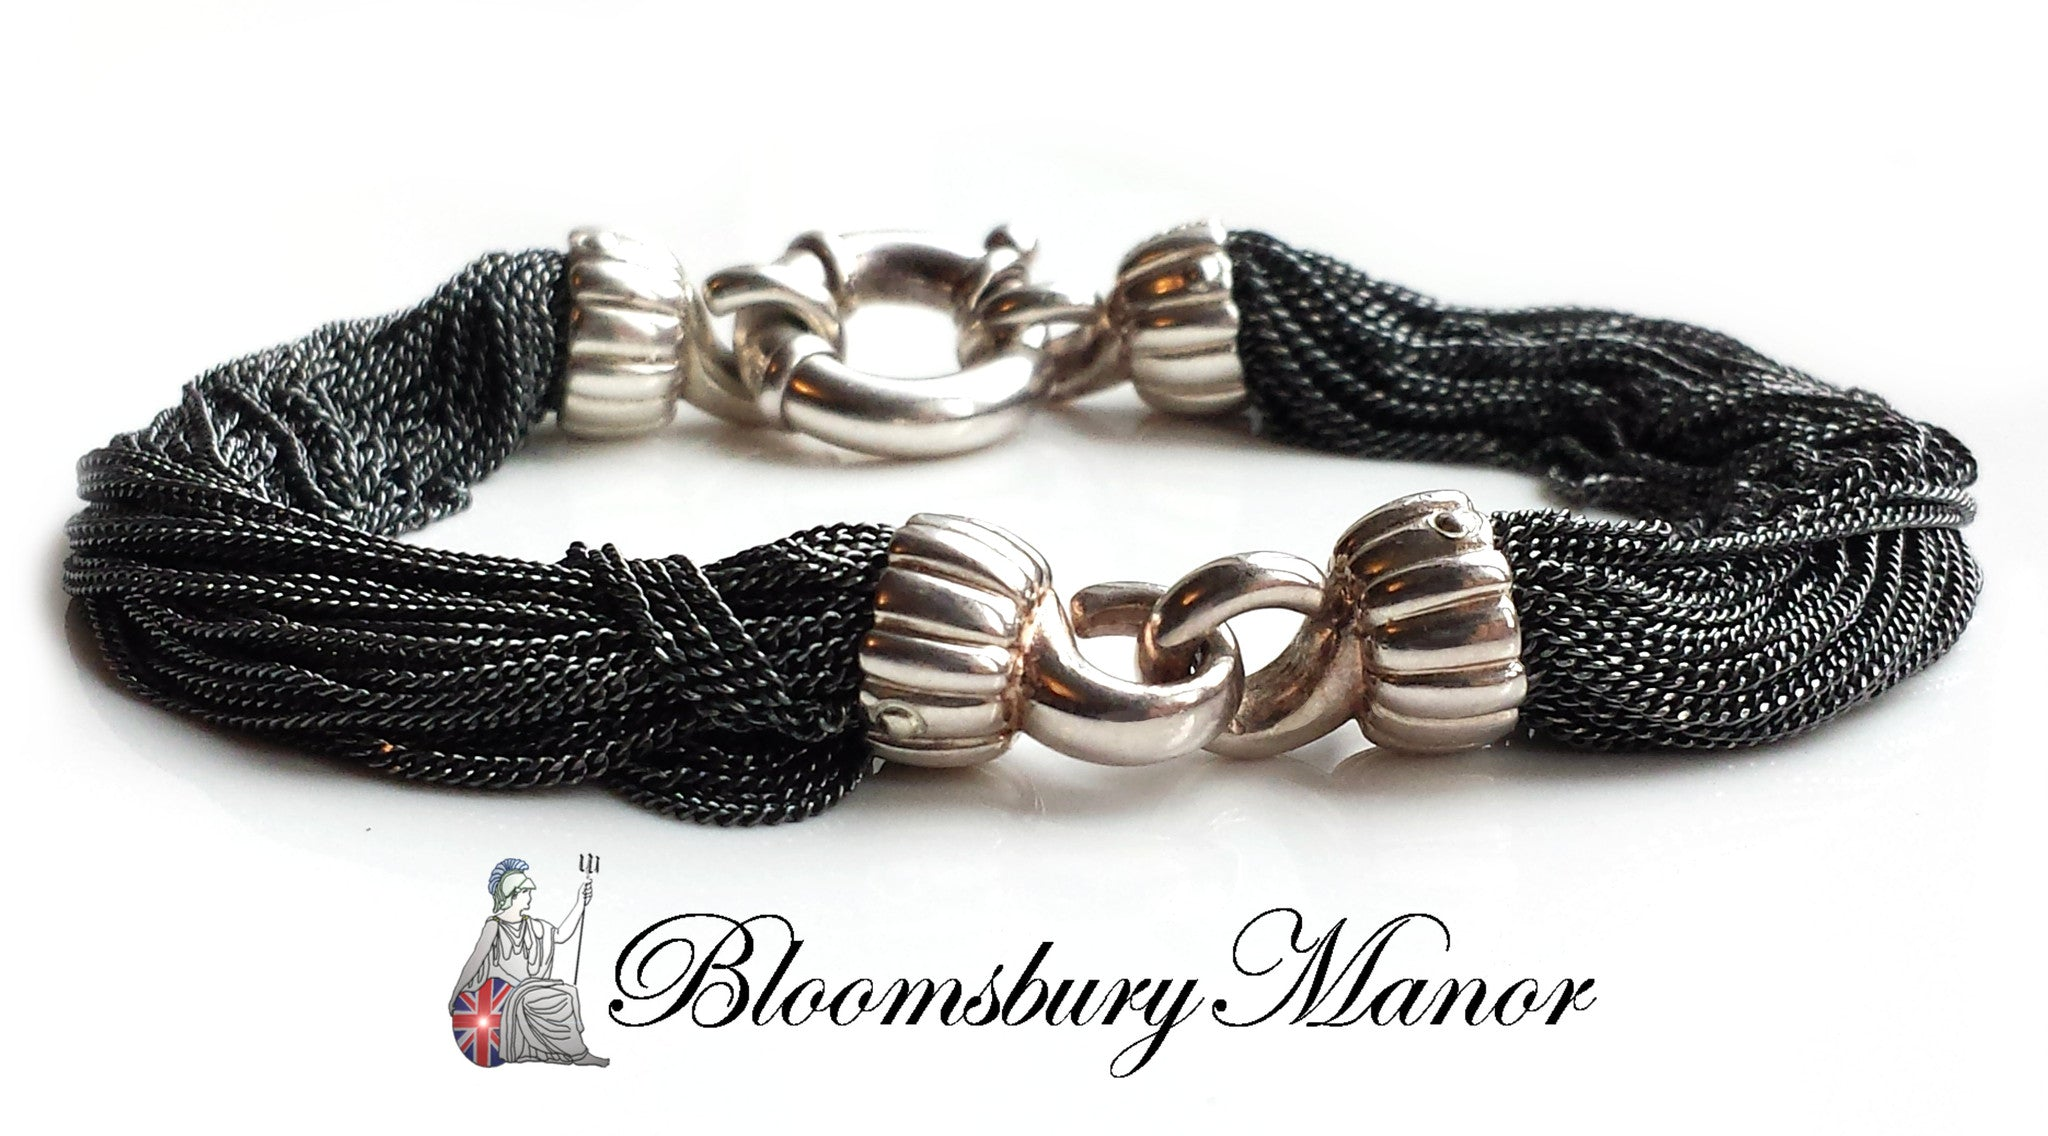 bracelet us multi strand pdpzoom sku main products en casual vintage fossil aemresponsive